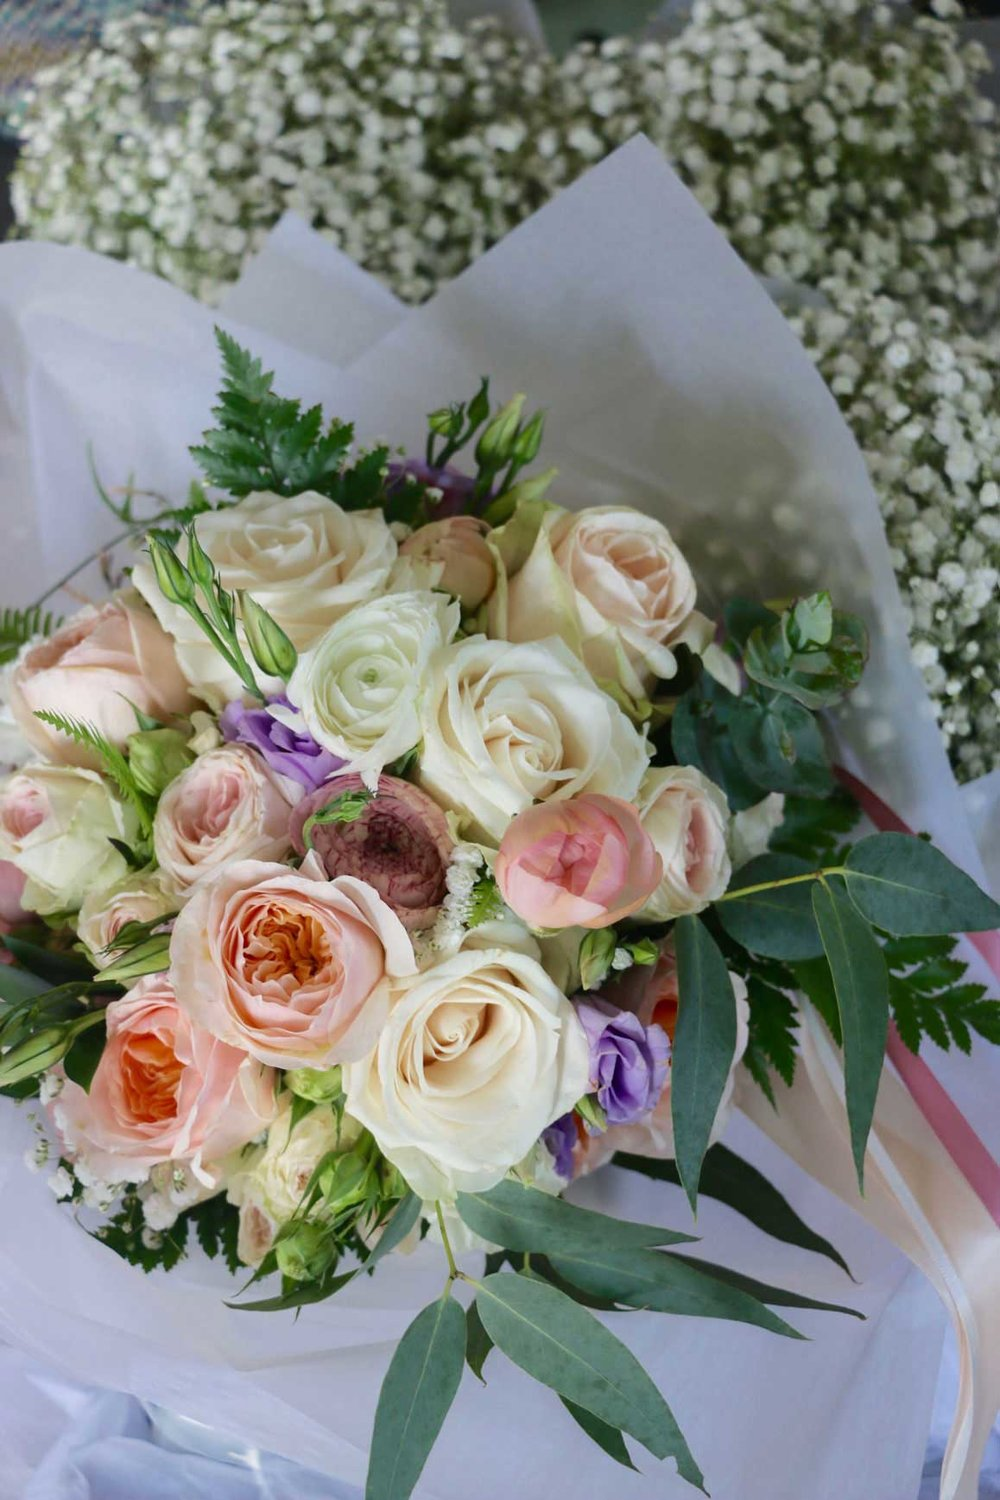 Entwined_Botanical_Bloom_Stylists_Wedding_Florists_Event_Flowers_Perth_Gallery15.jpg